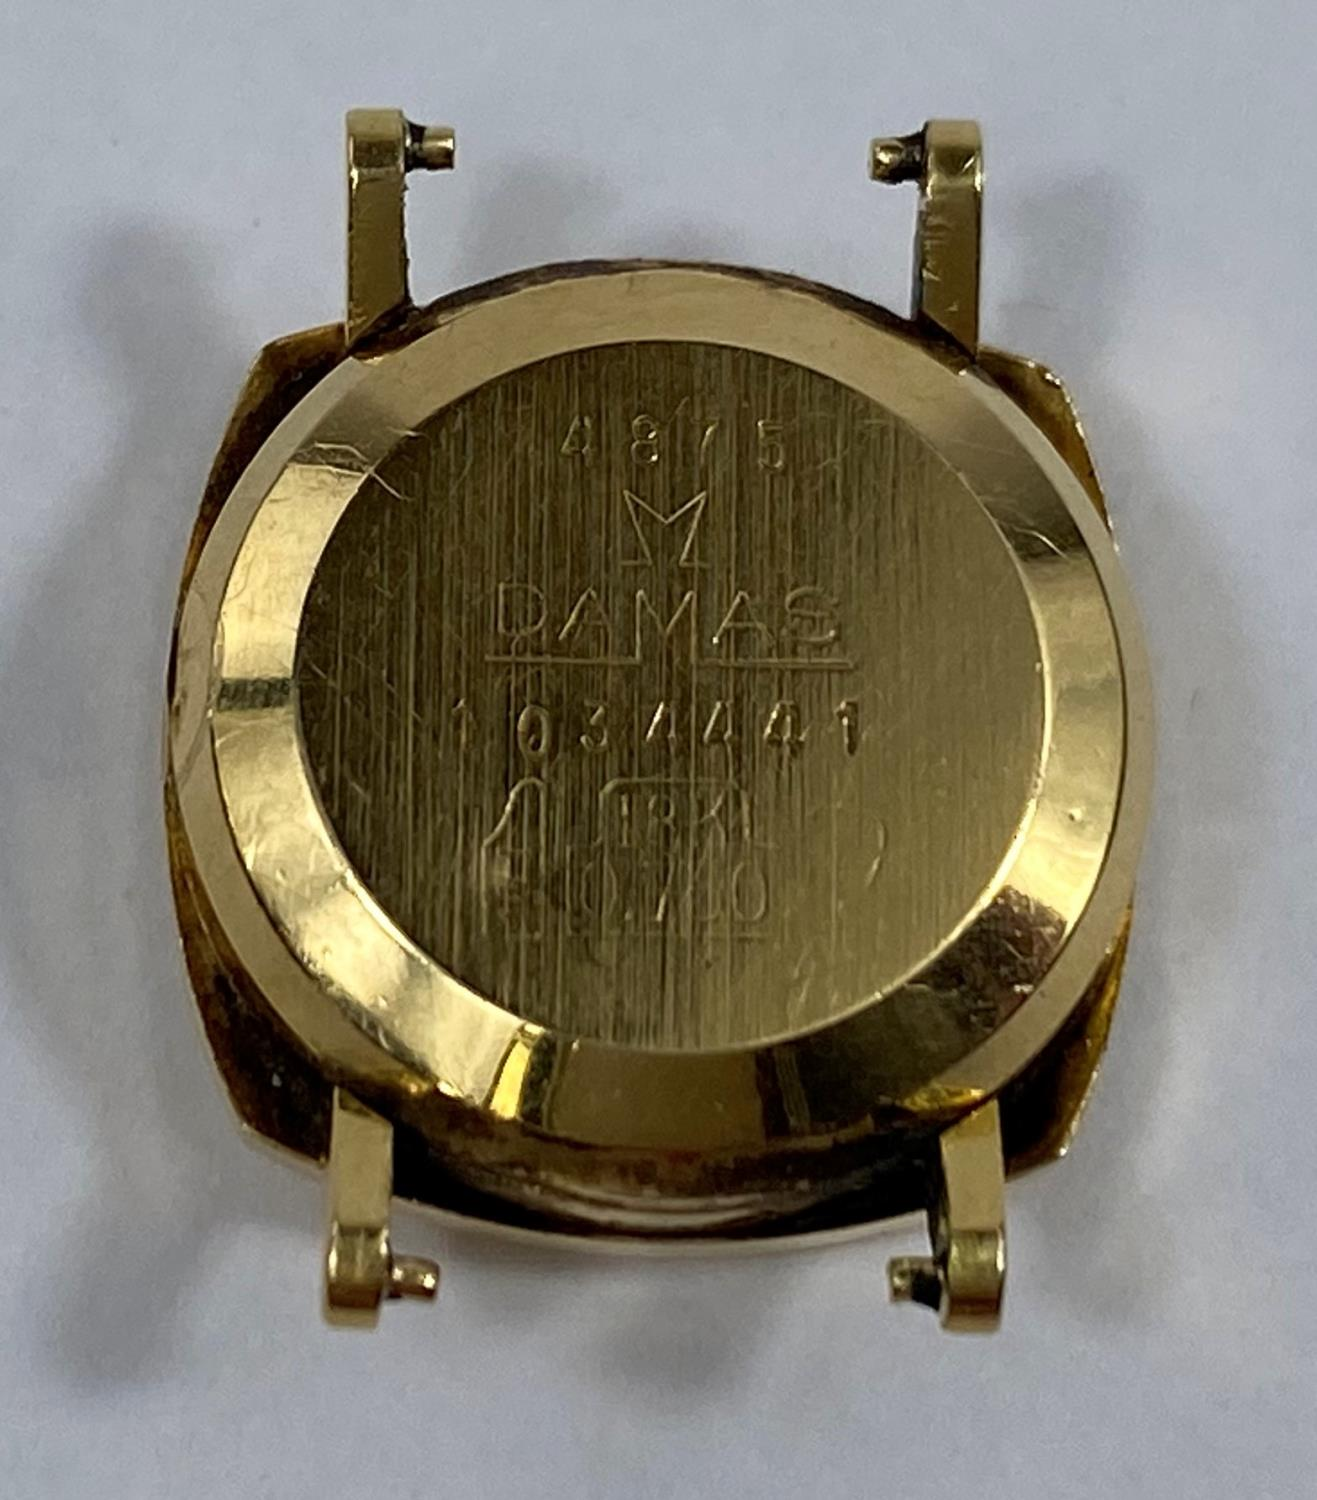 An 18 carat gold watch case, 4.1 gm - Image 2 of 2